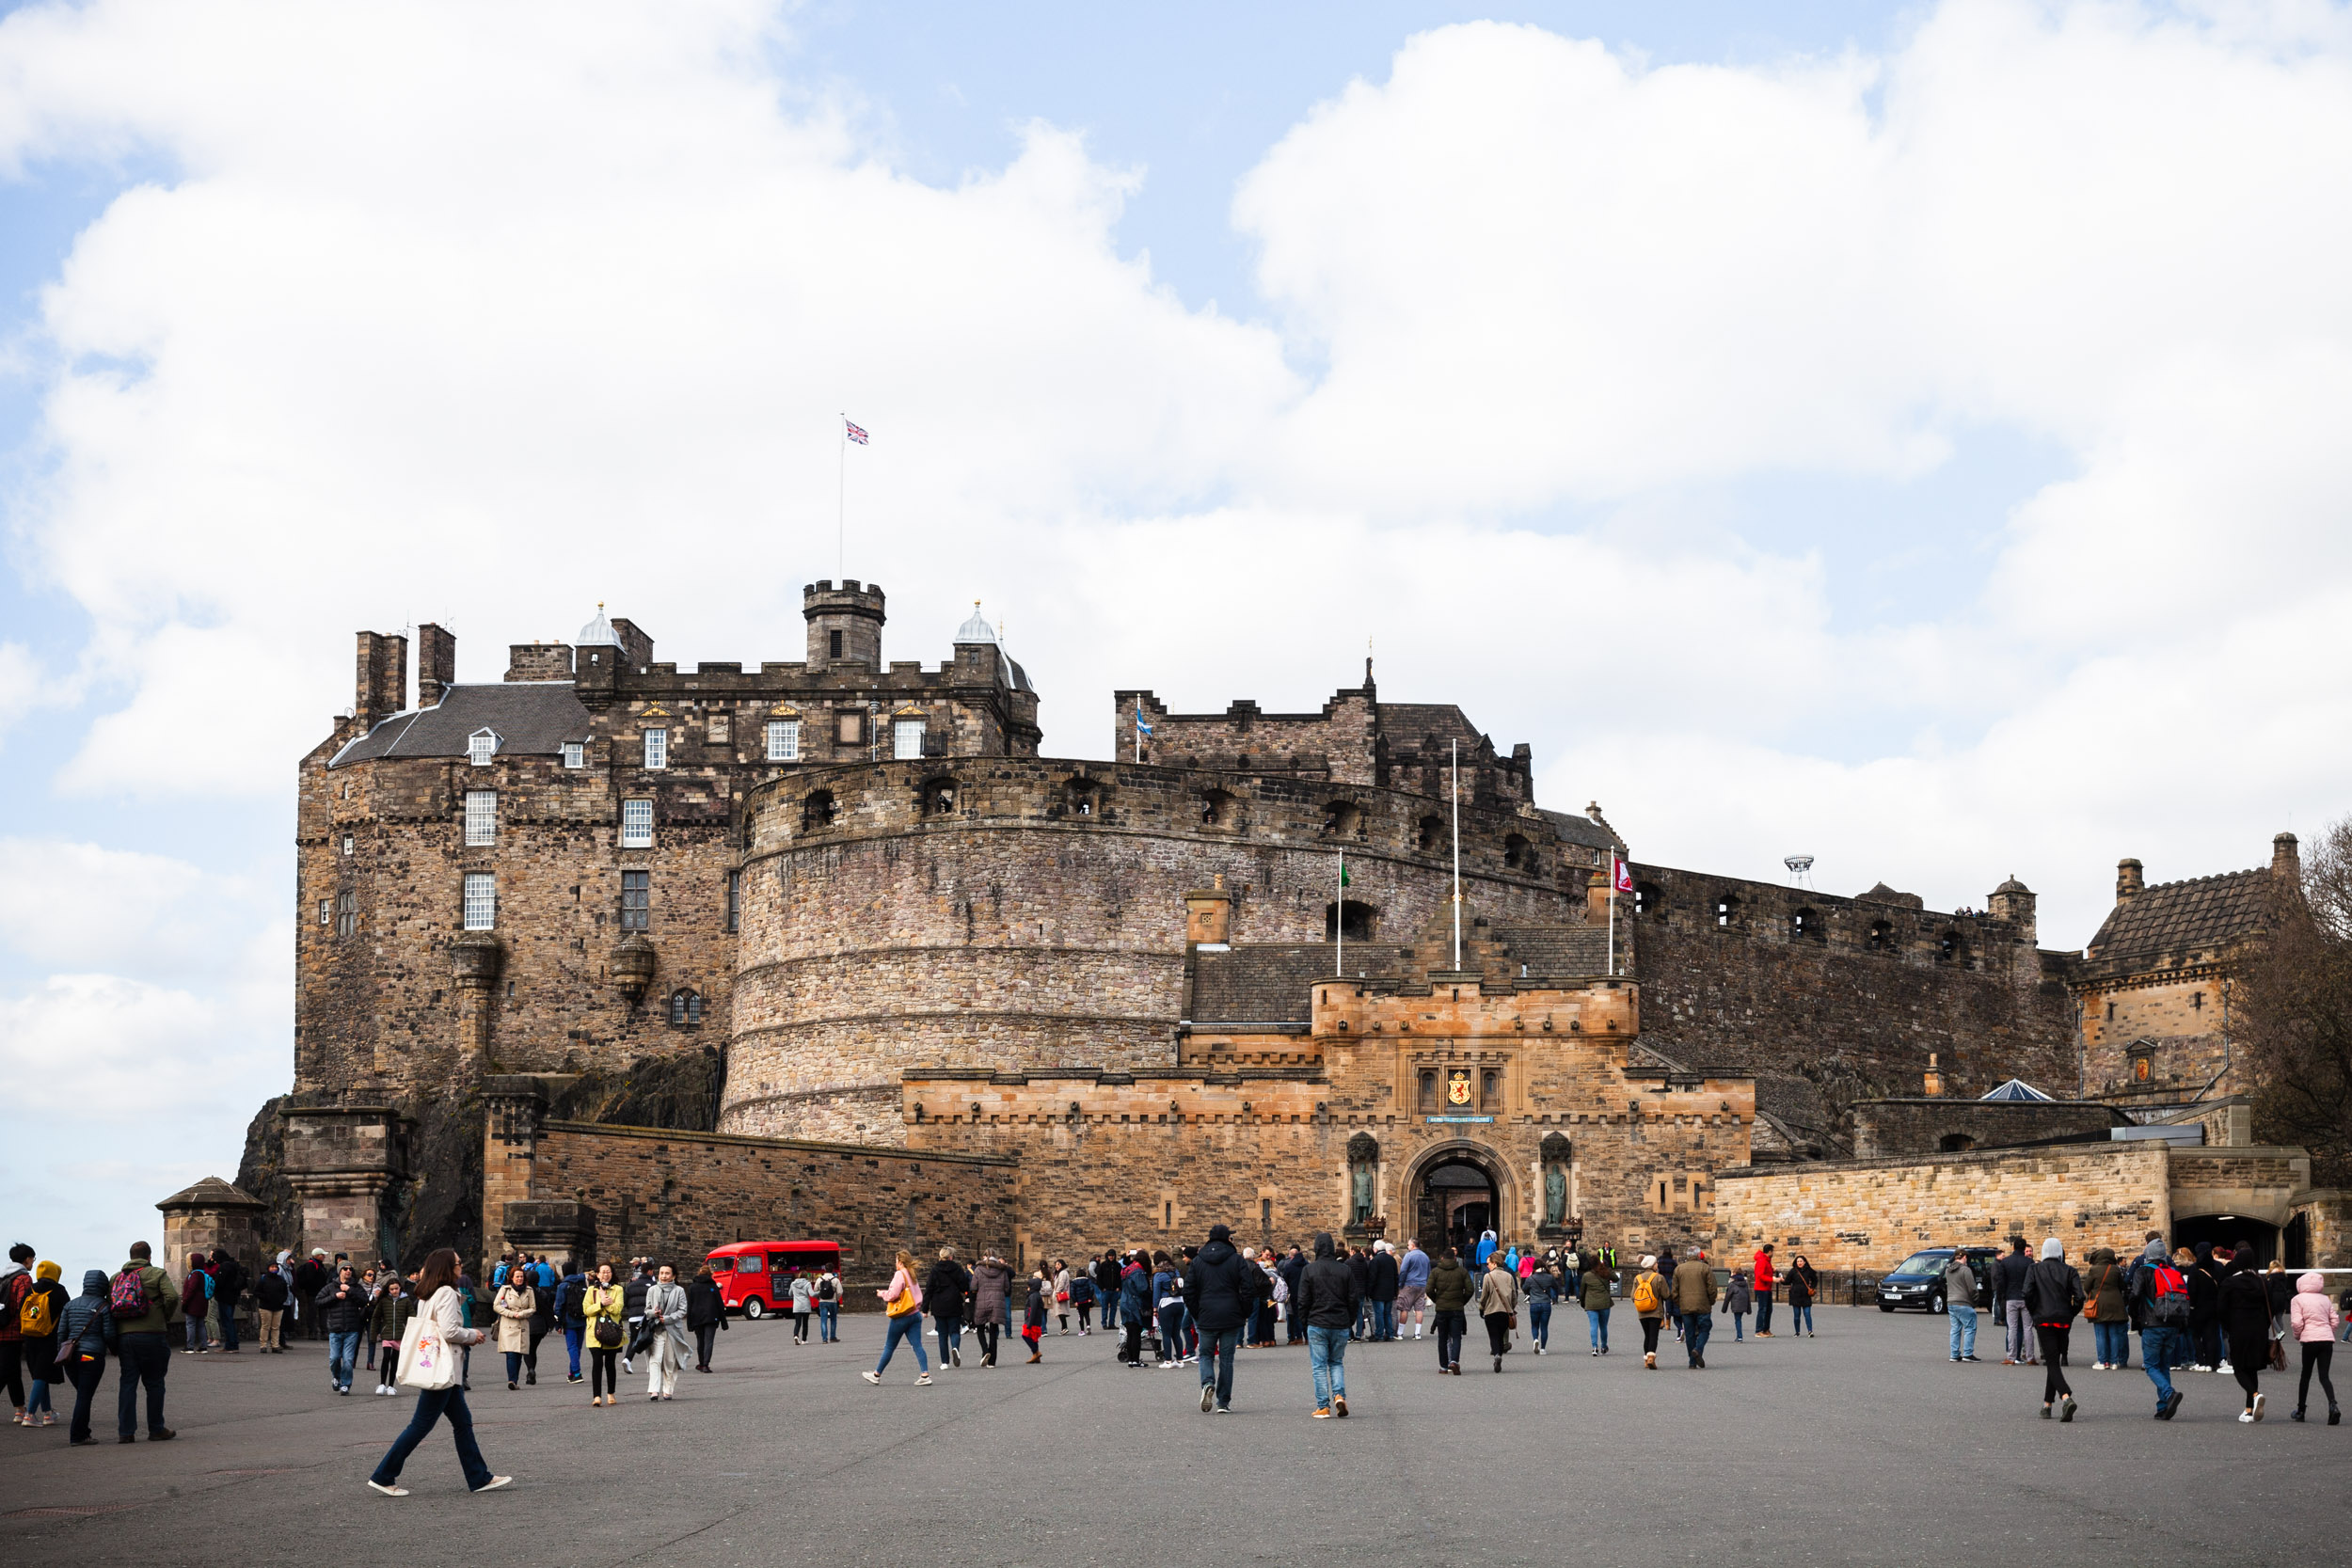 Perhaps it was due to the throngs of tourists, but I thought Edinburgh Castle was less impressive from the top of the hill. I didn't have a chance to go inside, but I heard it's well worth multiple visits to see it all!